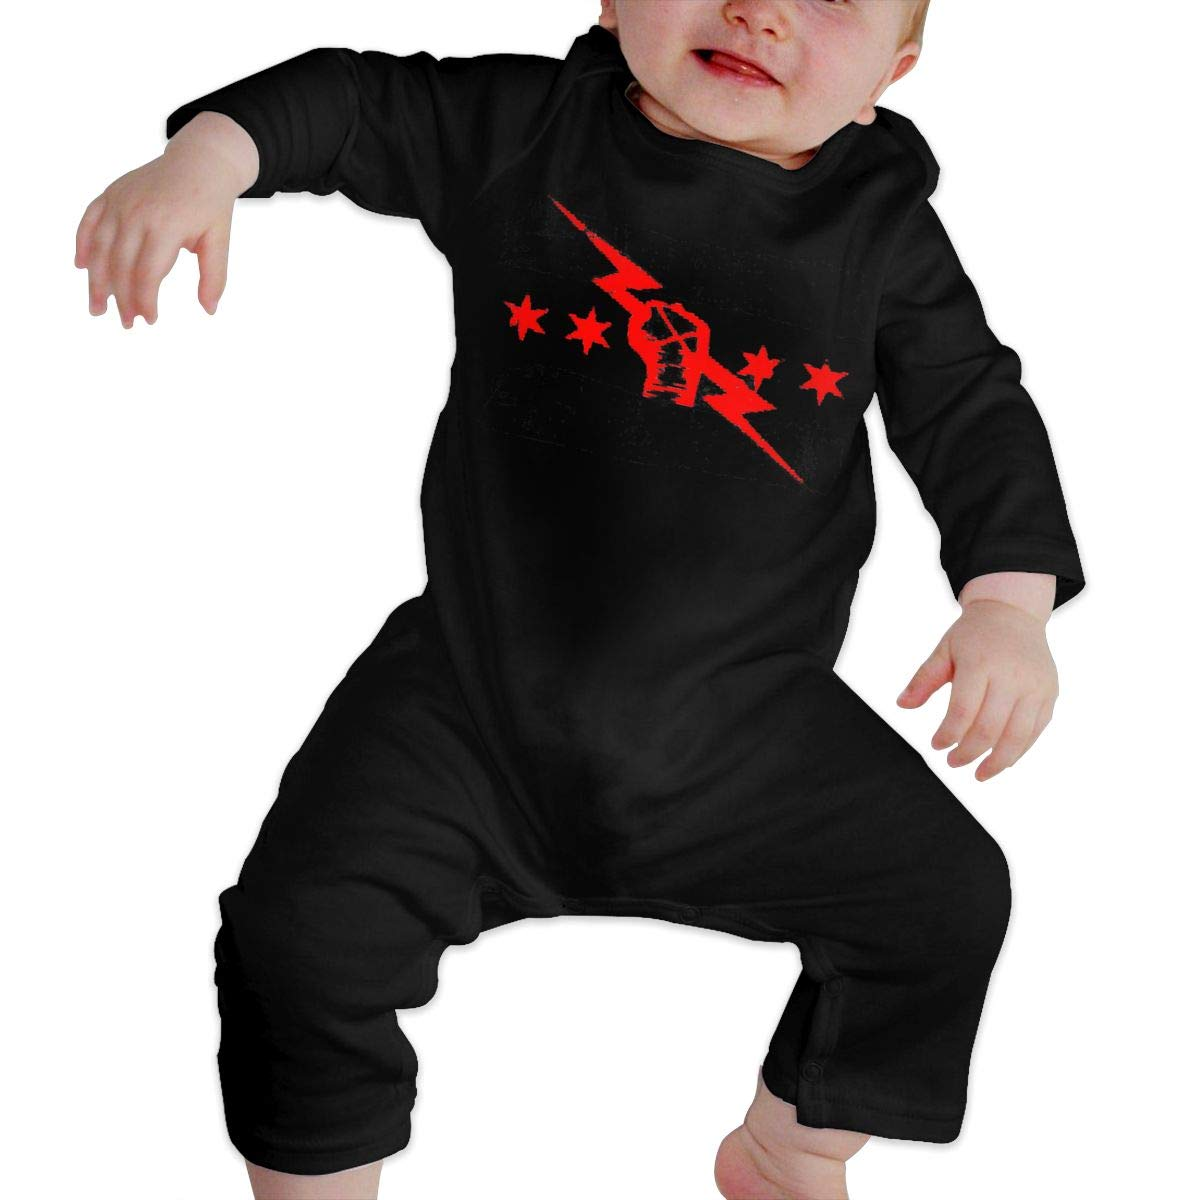 cm Punk Best in The World Kids Baby Unisex Cotton Cute Long Sleeve Hooded Romper Jumpsuit Baby Crawler Clothes Black